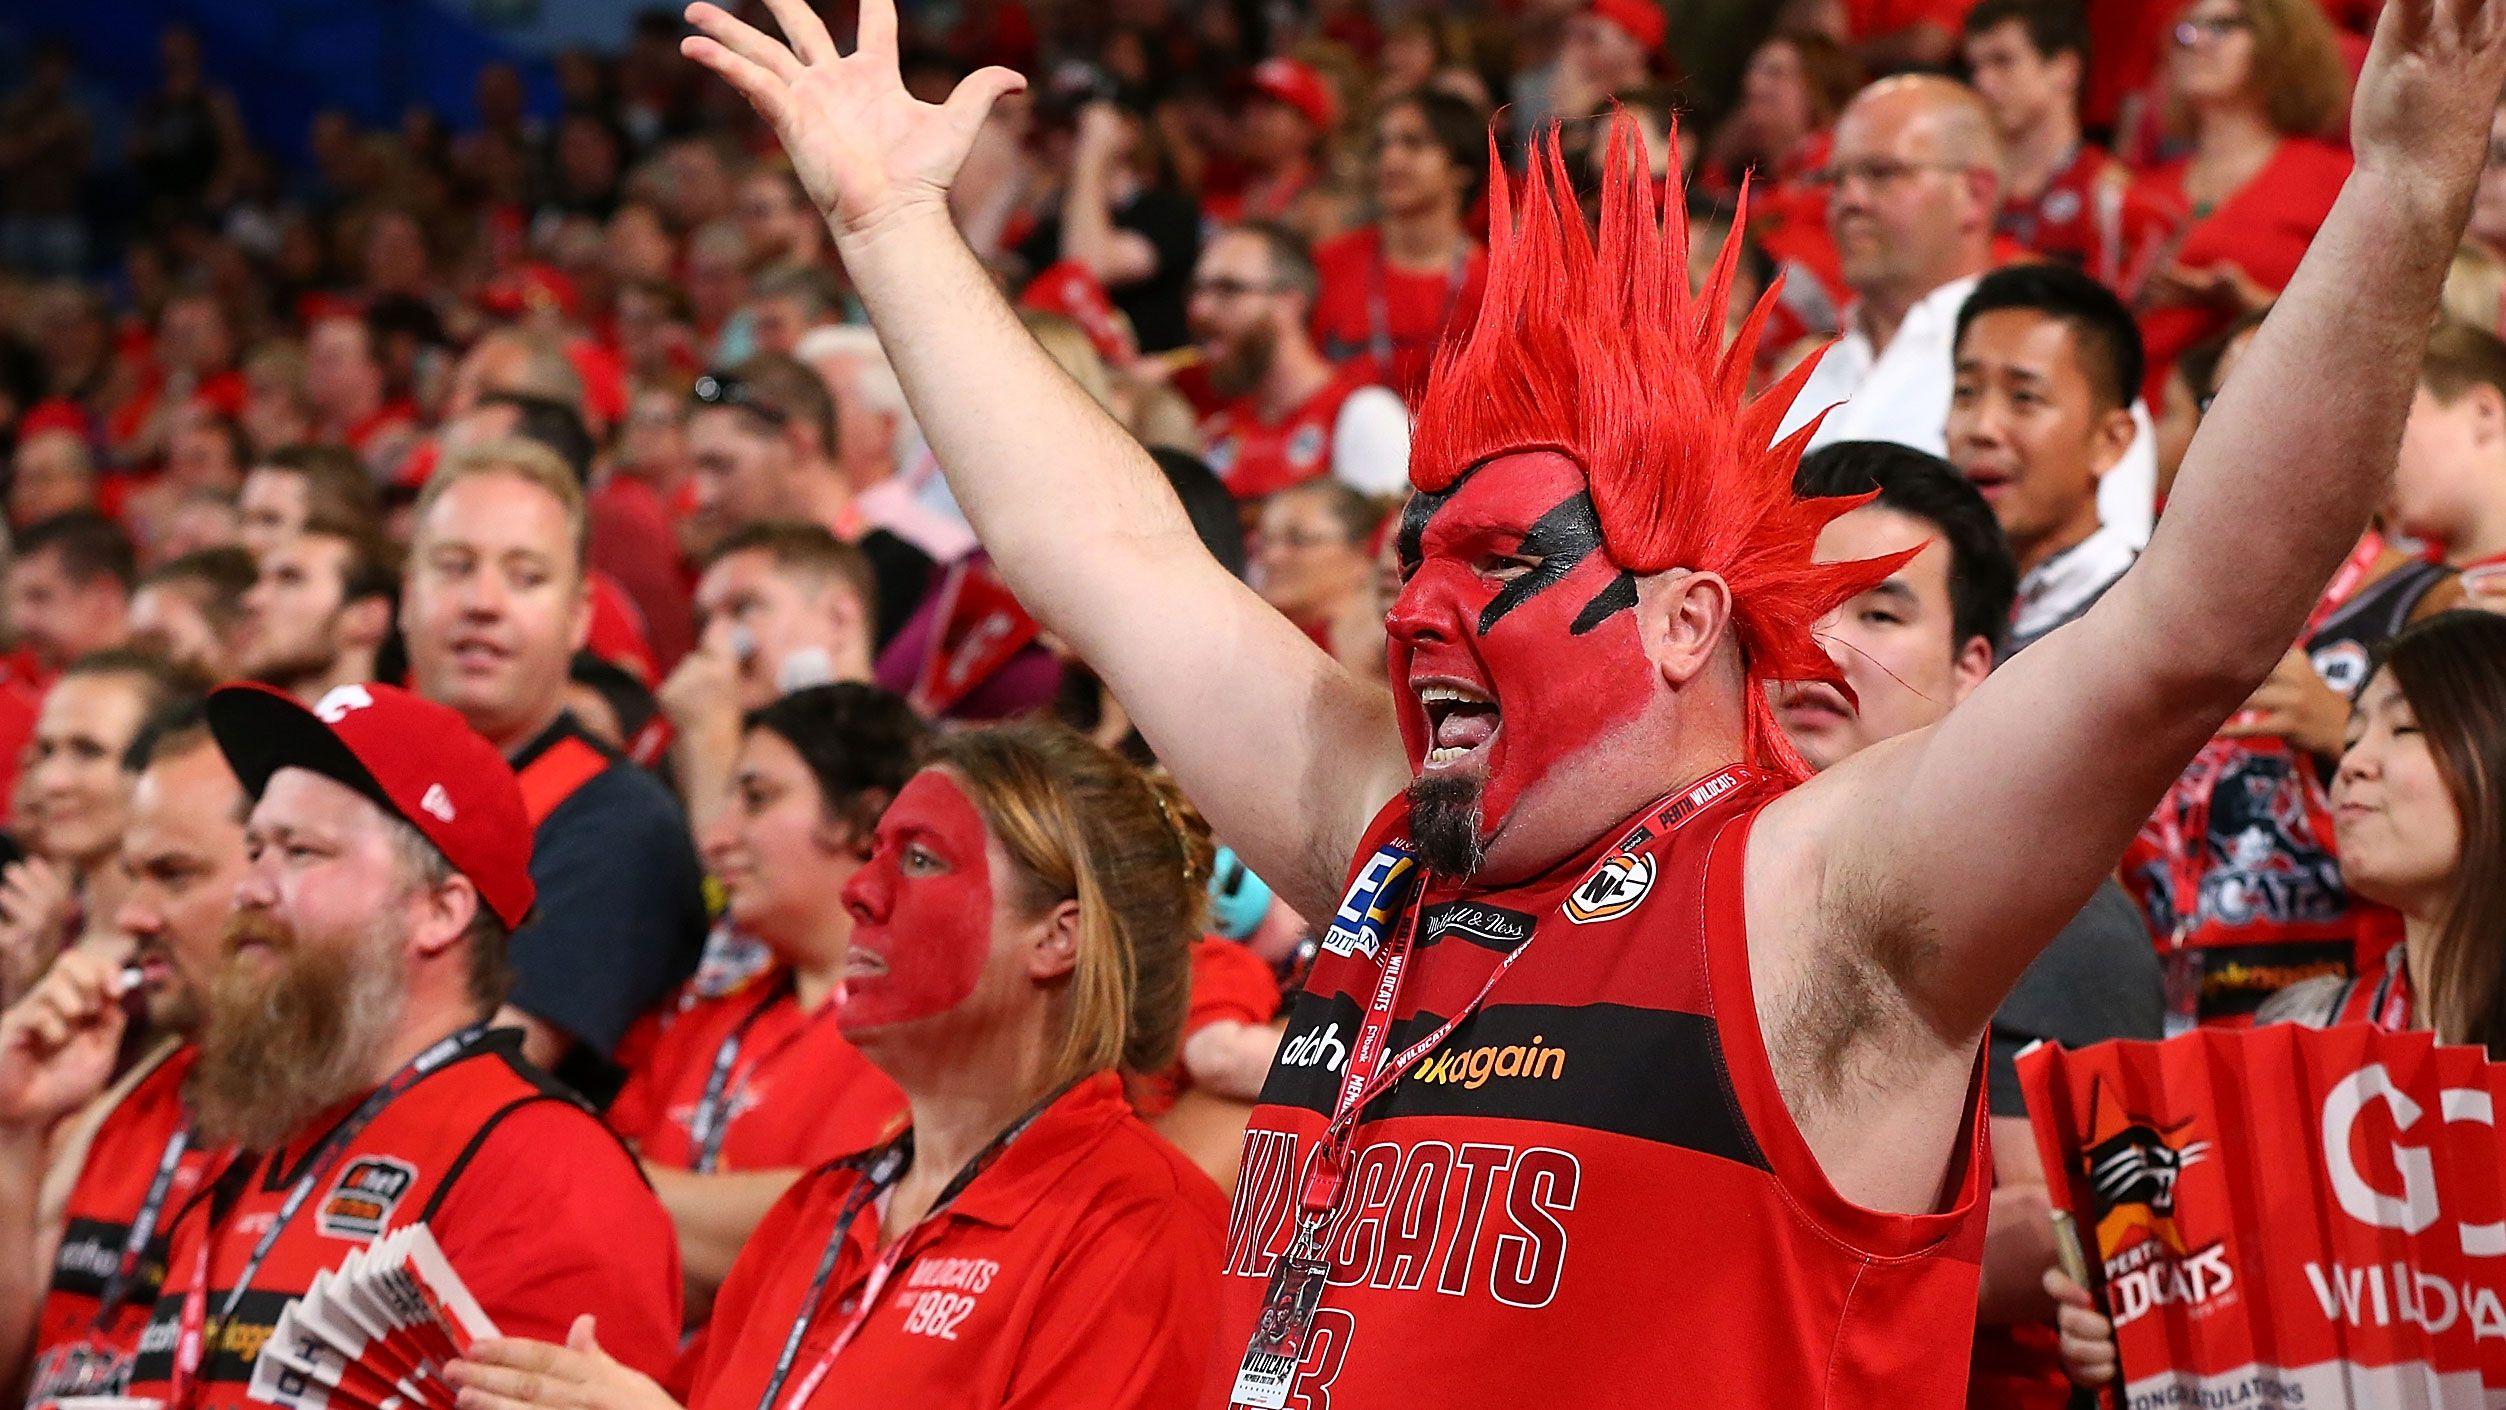 Perth Wildcats fandom is huge.